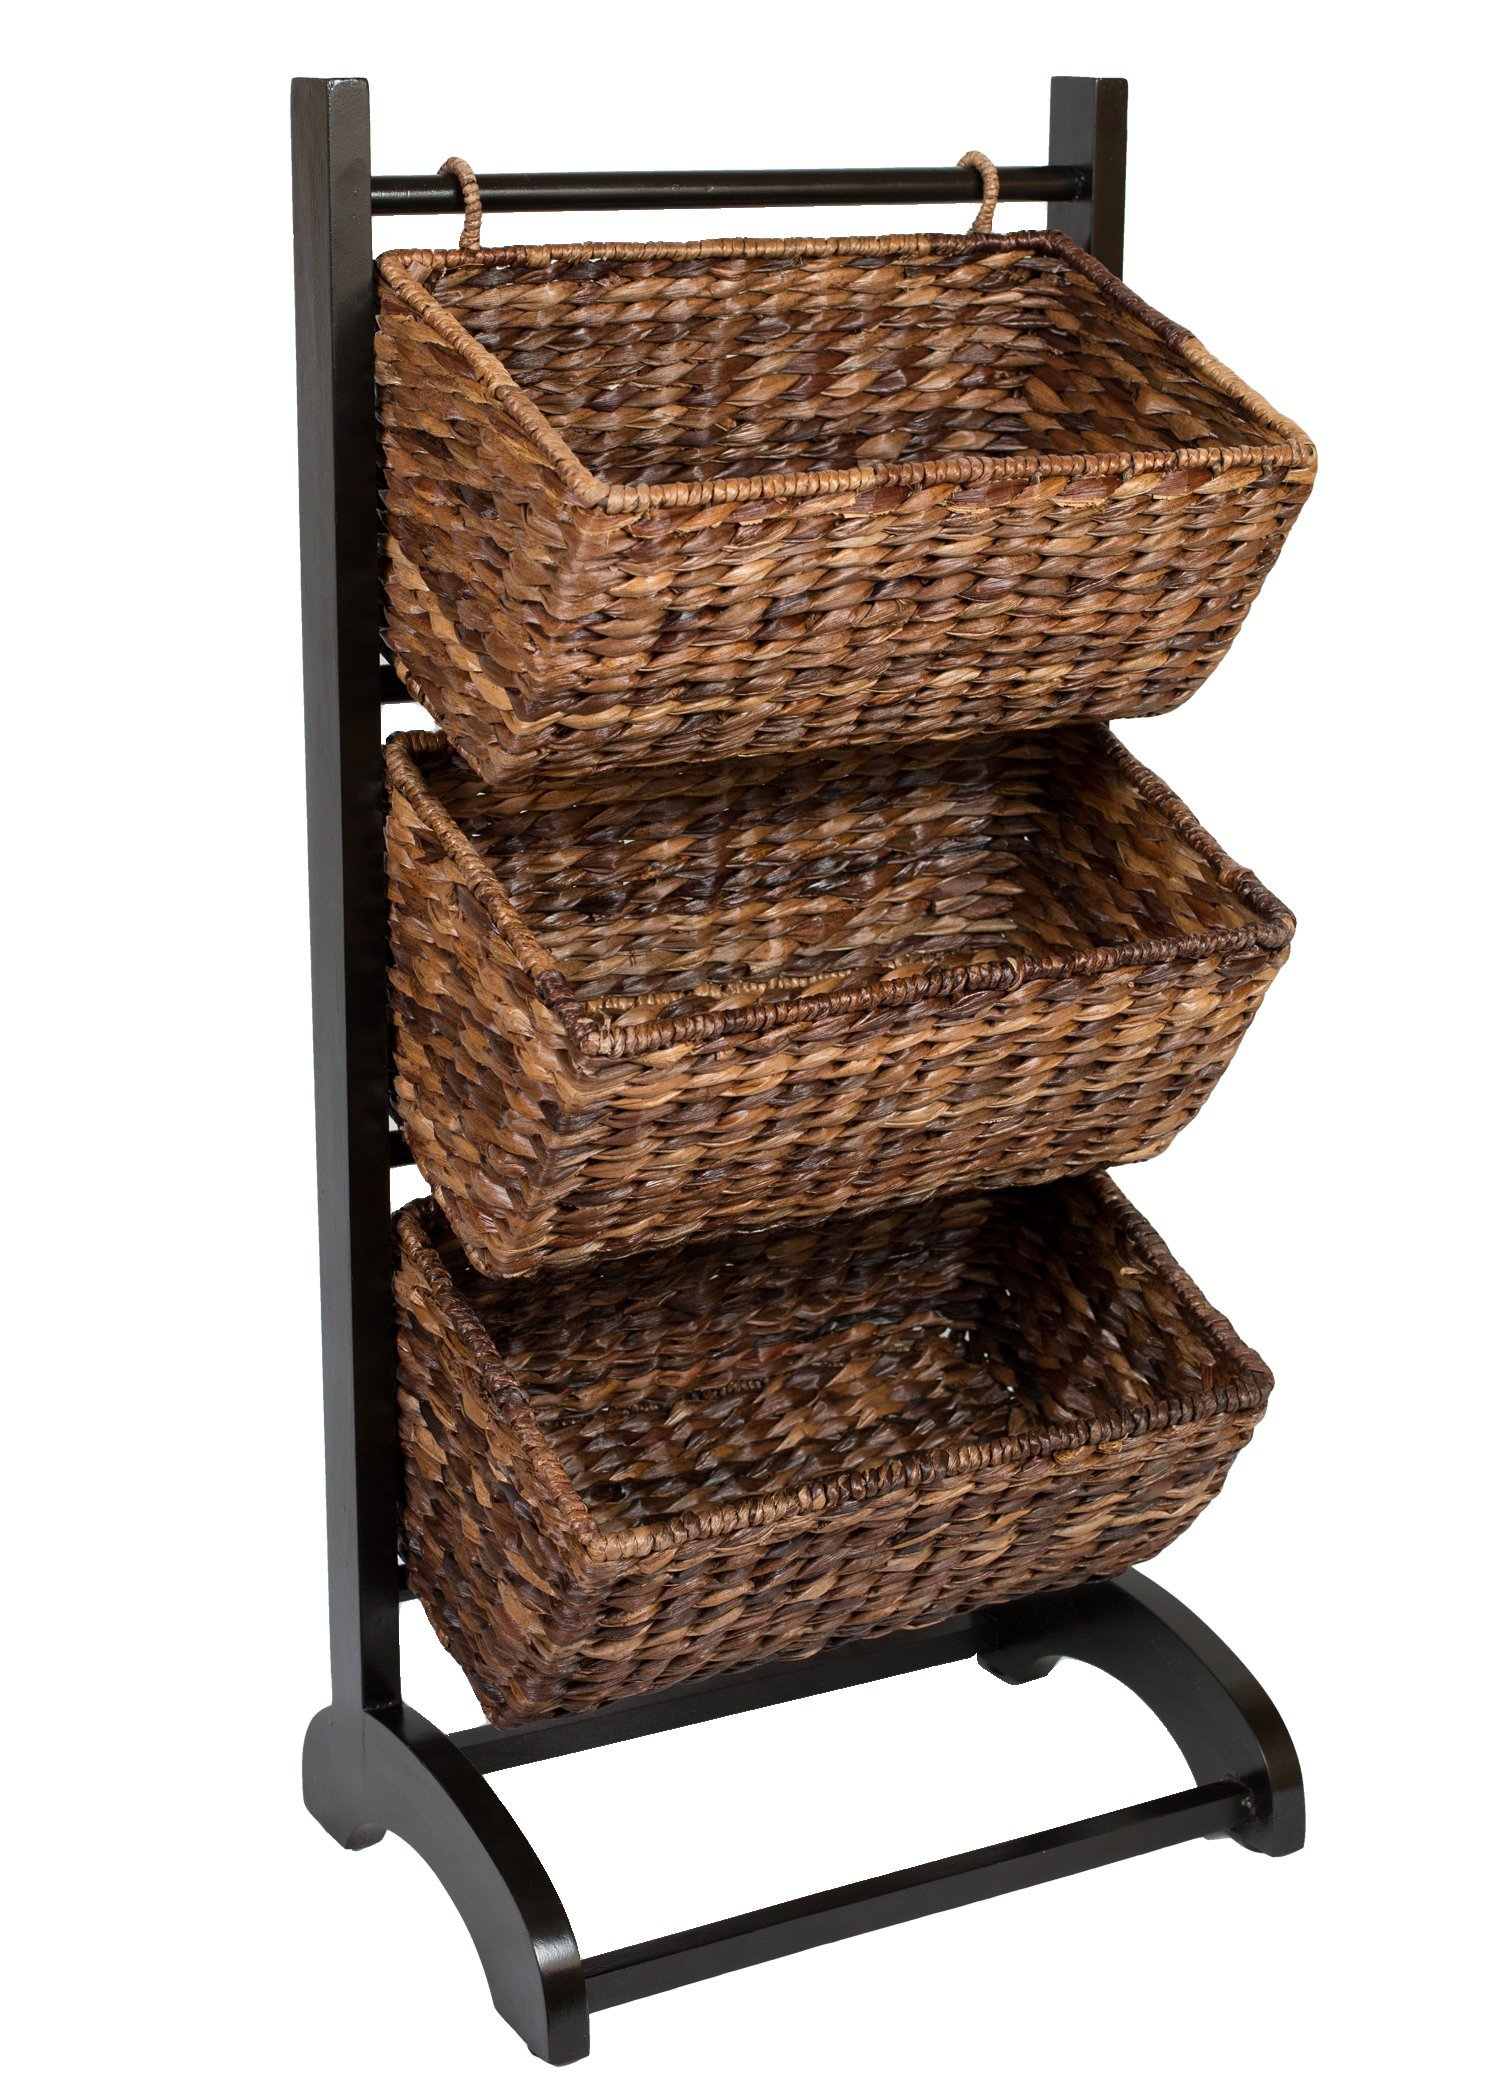 BirdRock Home 3-Tier Abaca Storage Cubby (Brown) | Made of Extremely Durable Abaca Fiber | Solid Wood Frame by BIRDROCK HOME